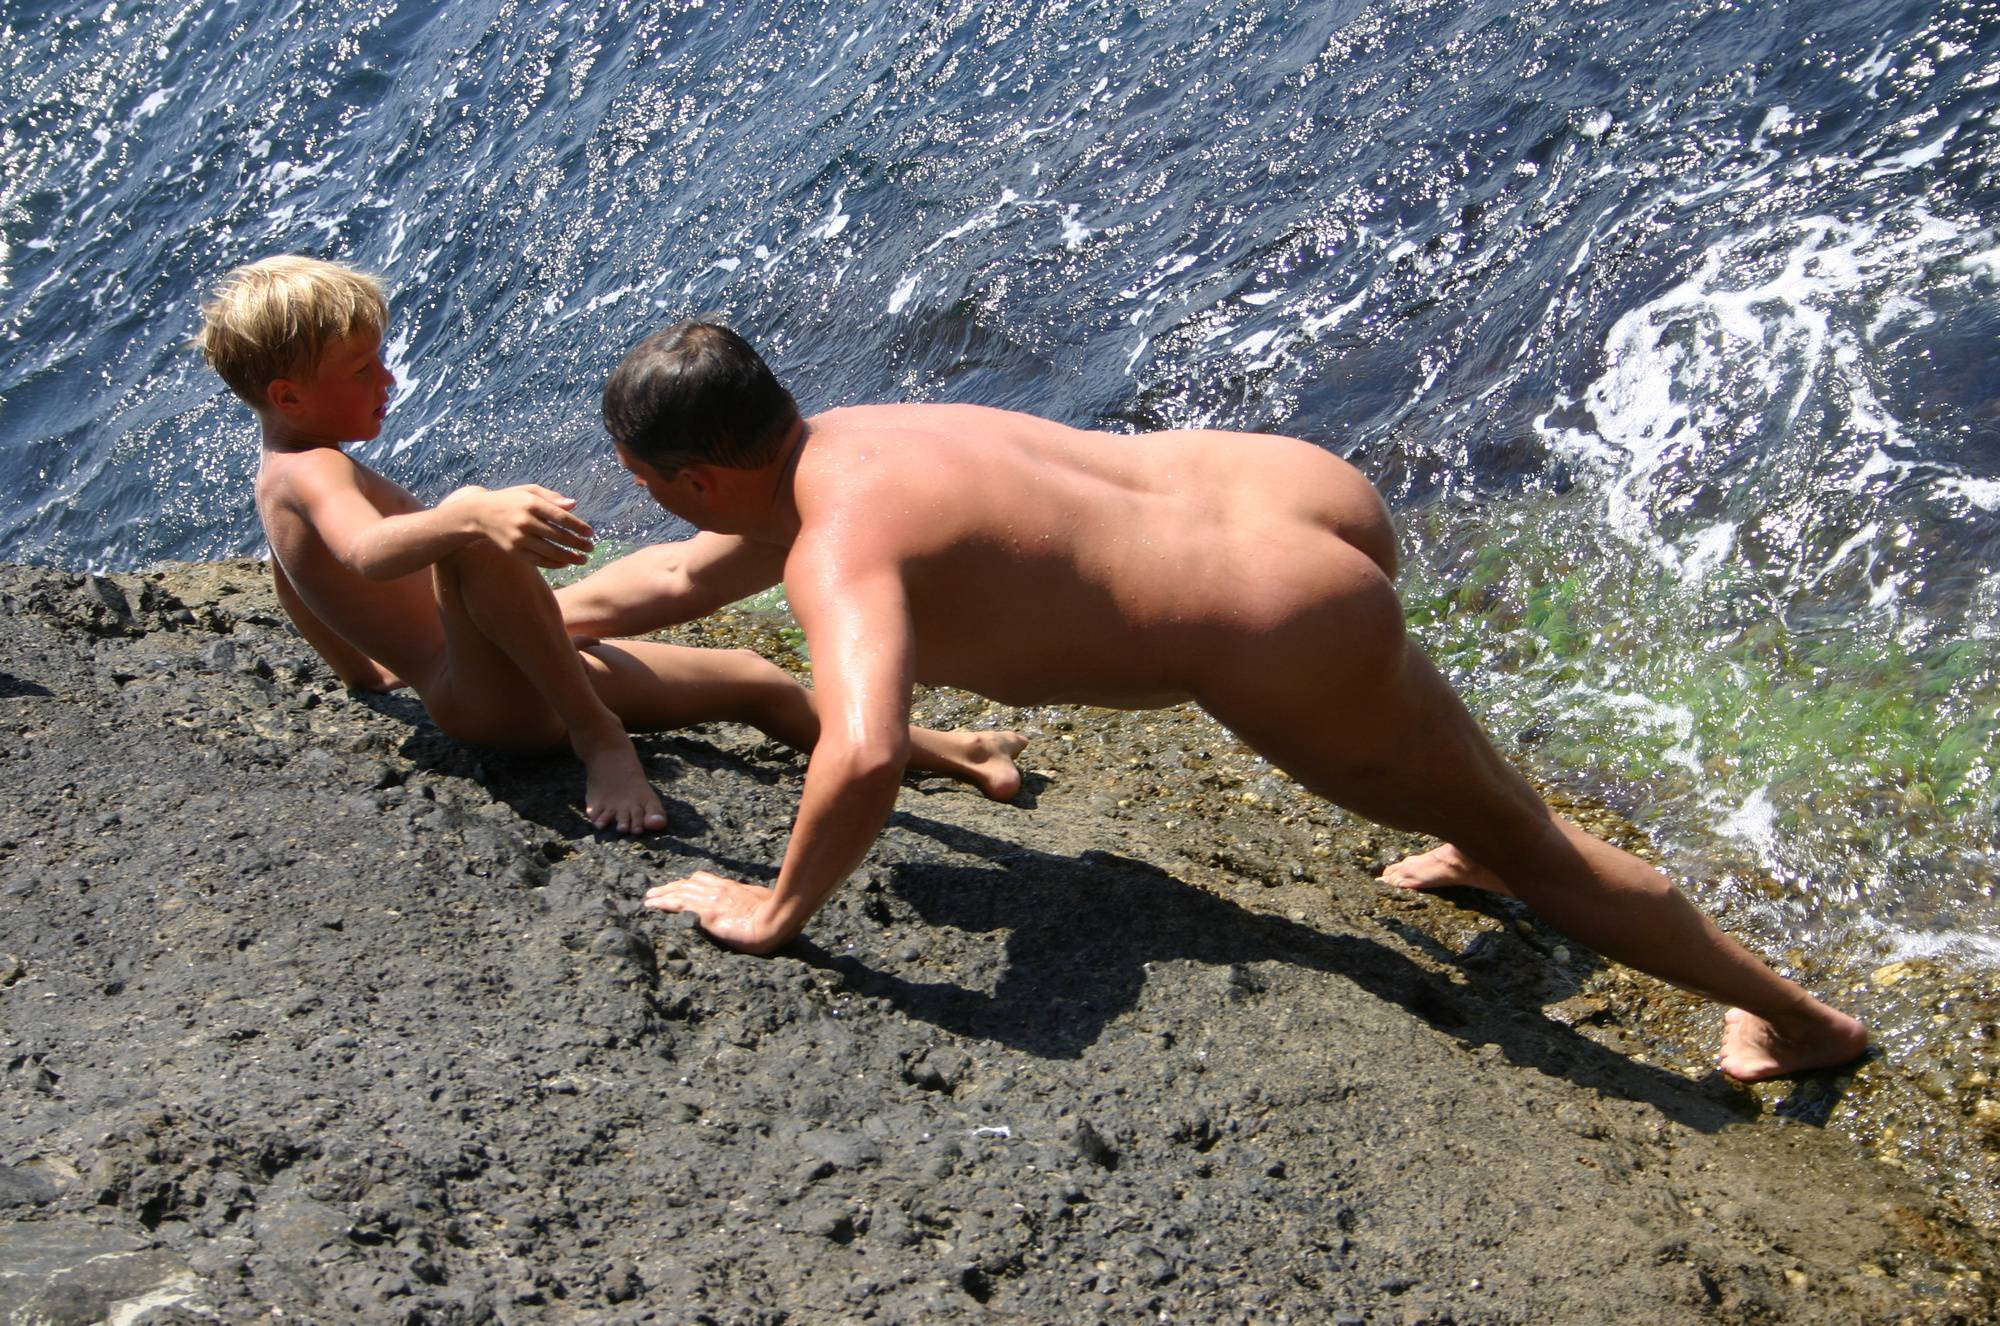 Nudist Pictures Naturist Rock Adventures - 2